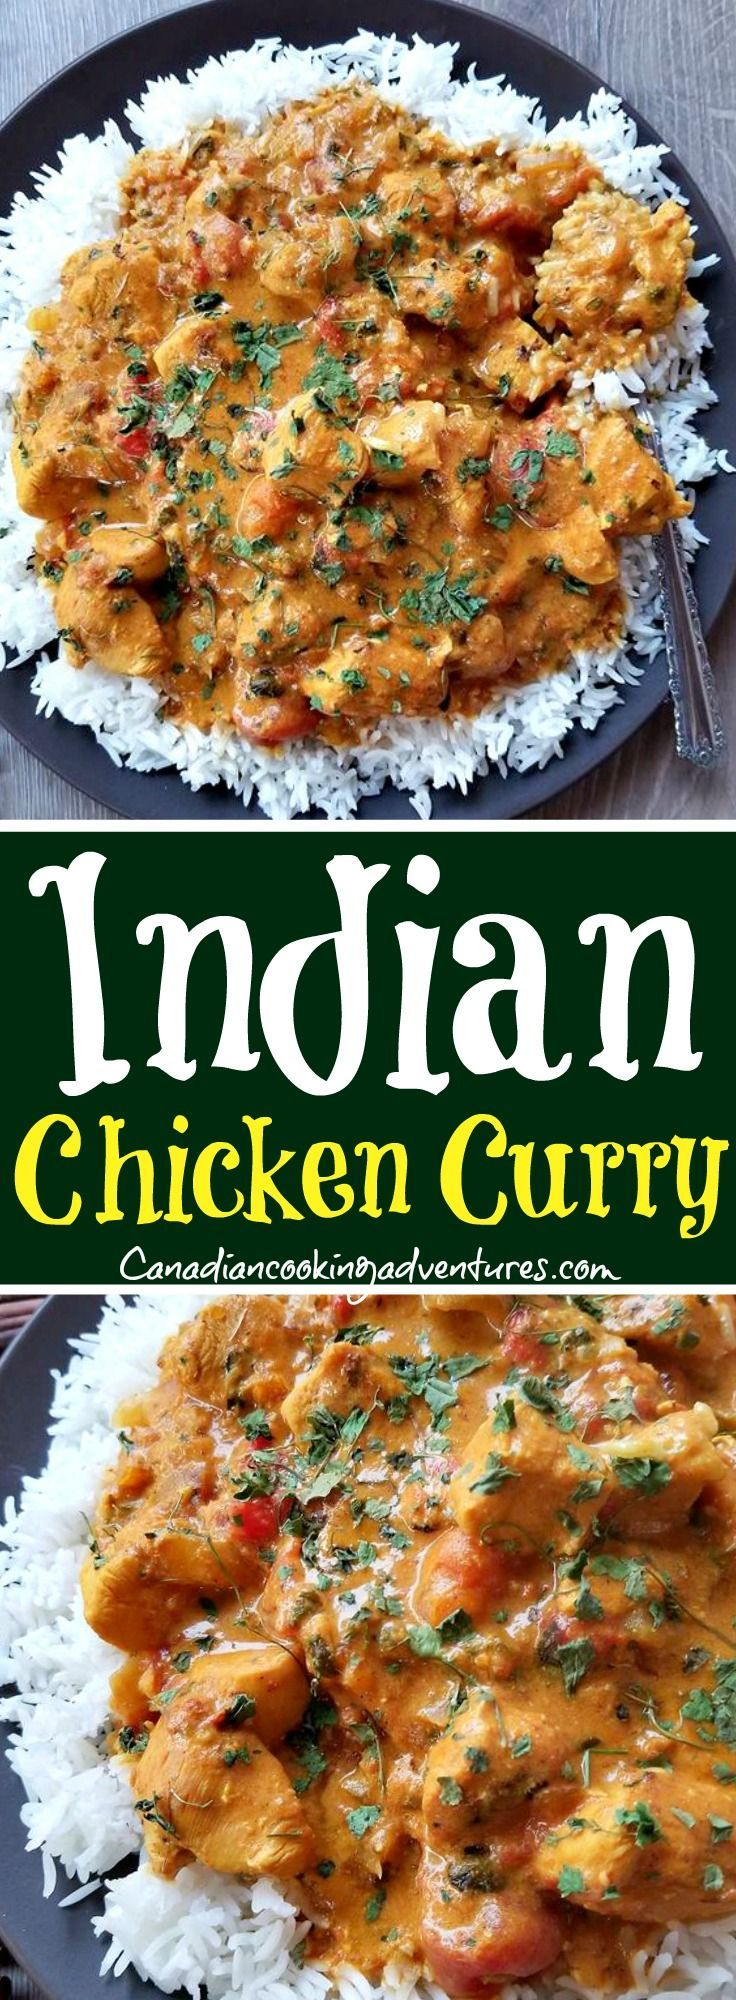 13 healthy recipes Chicken curry ideas